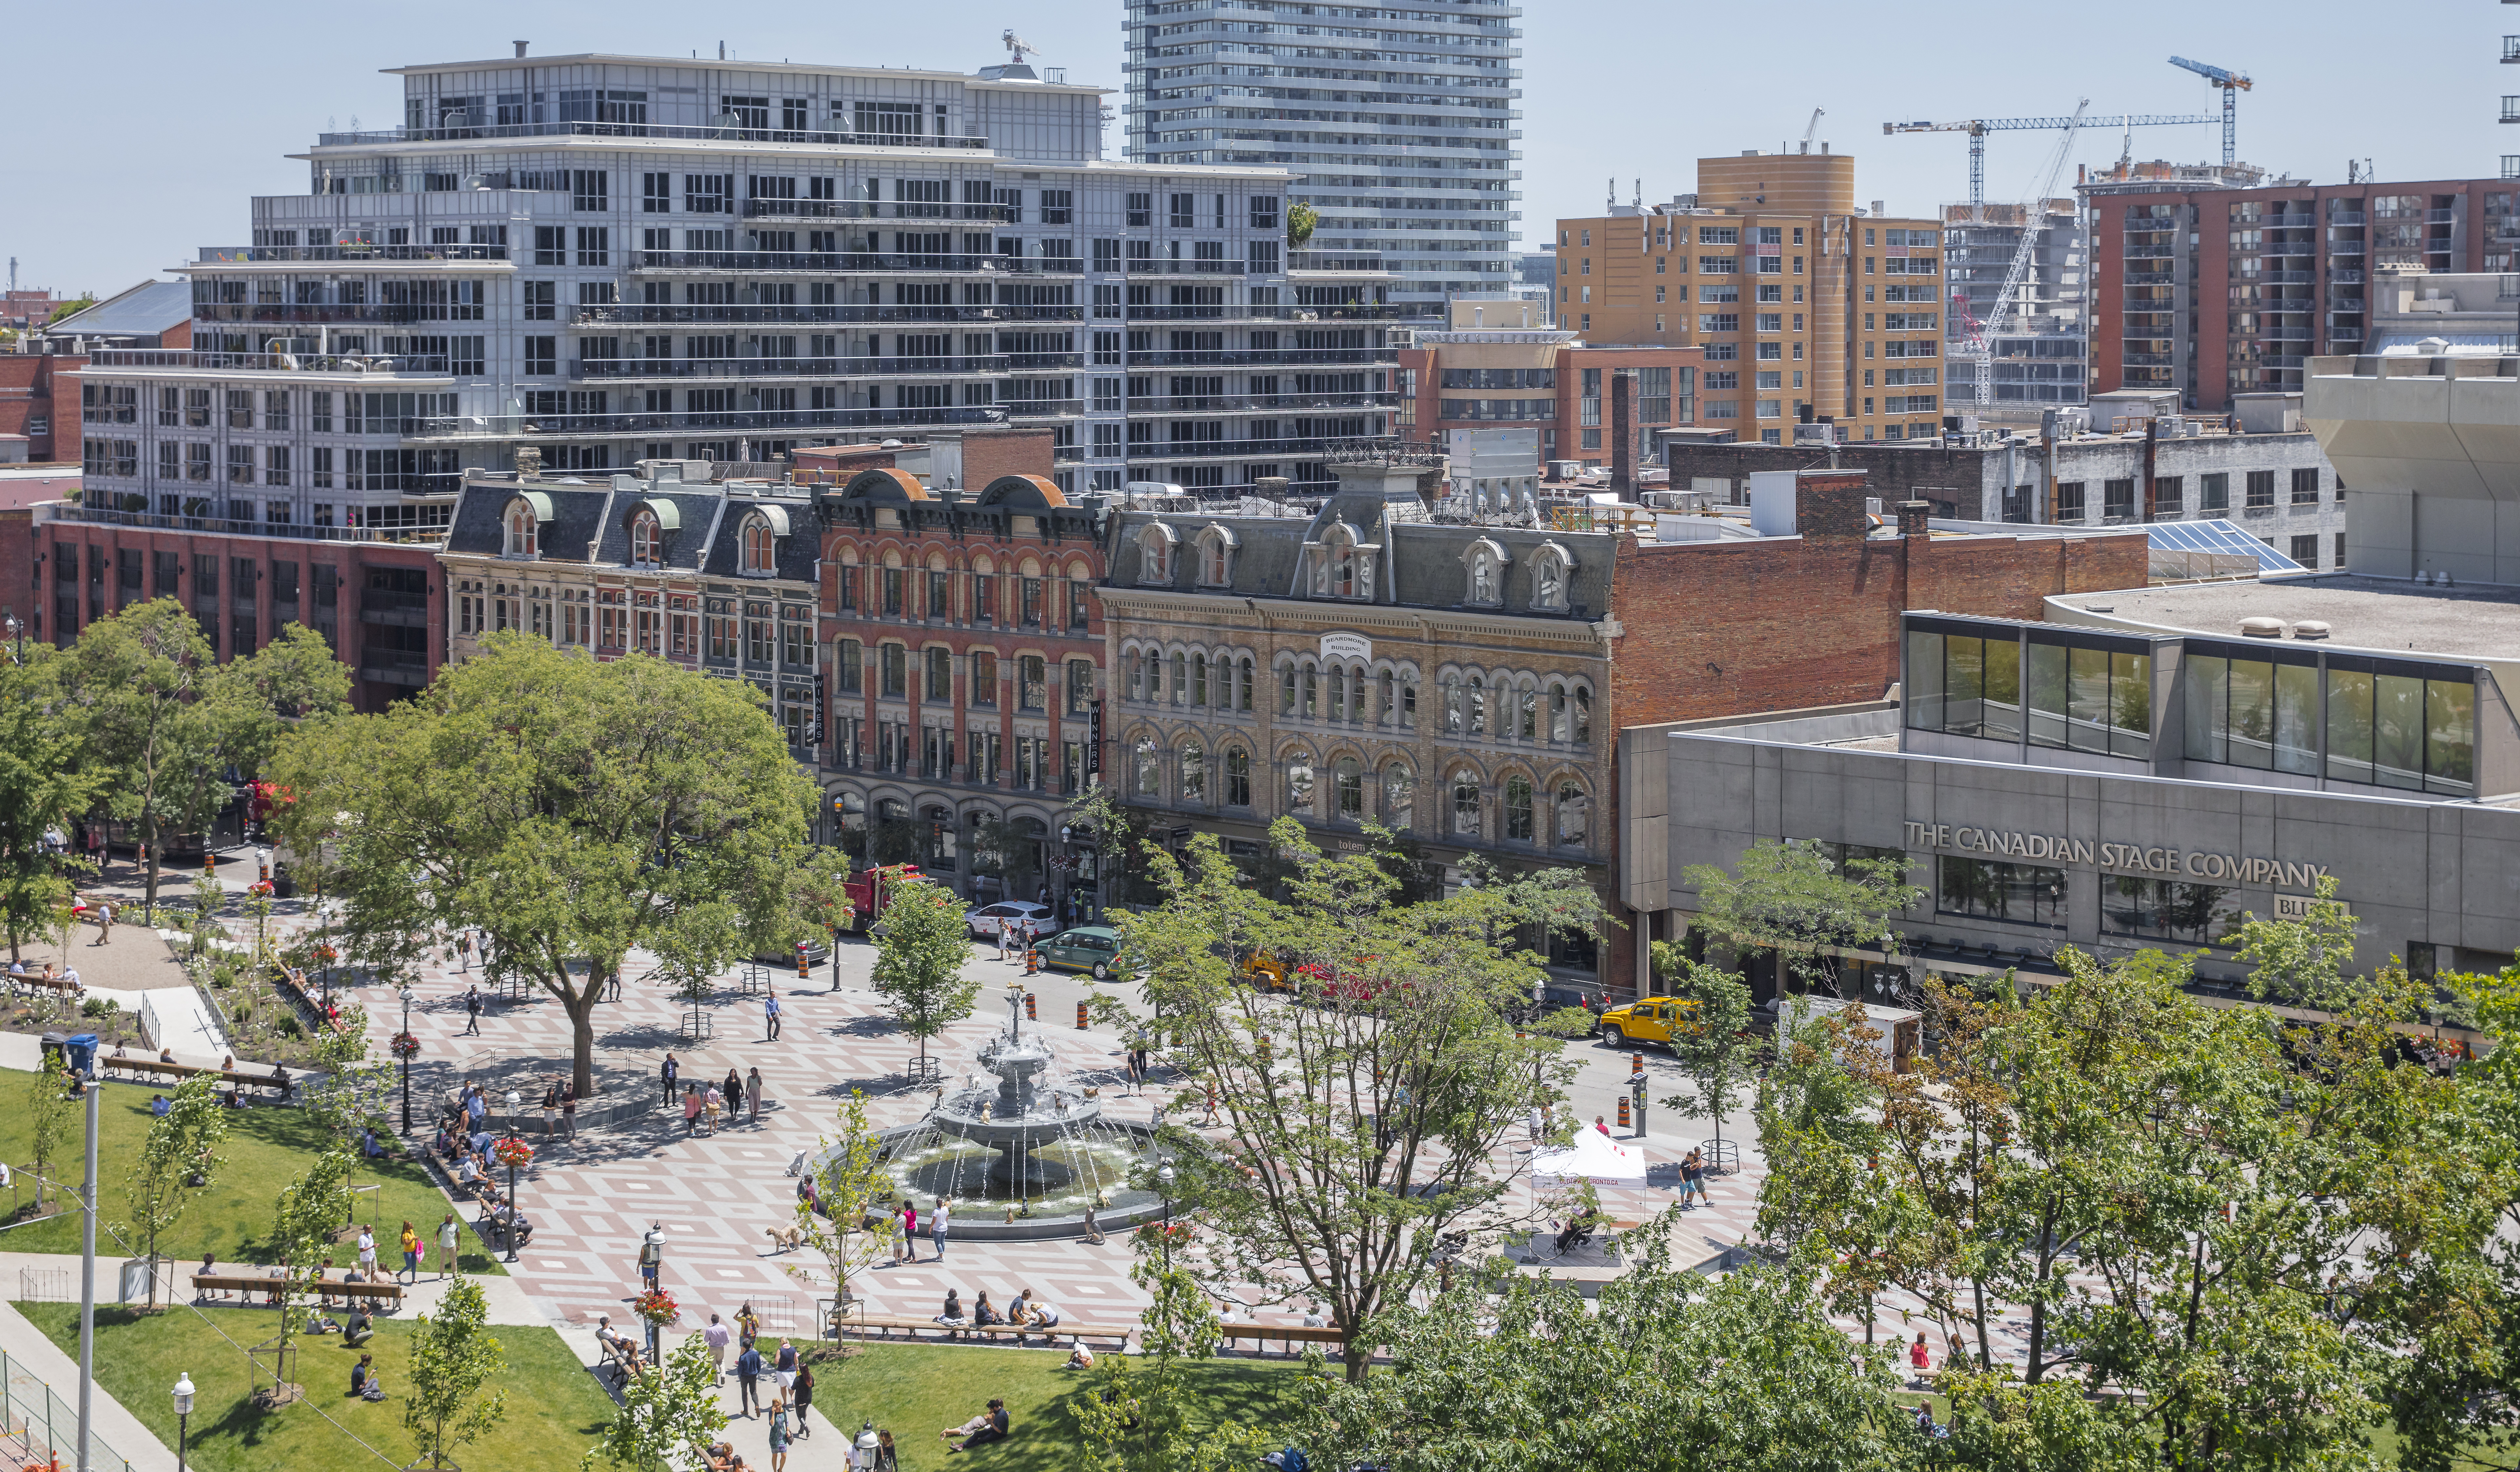 Berczy Park includes one of the most fountains in Toronto, a perfect place to walk around, take a date, take your kids and spend a good few hours (if weather permits).